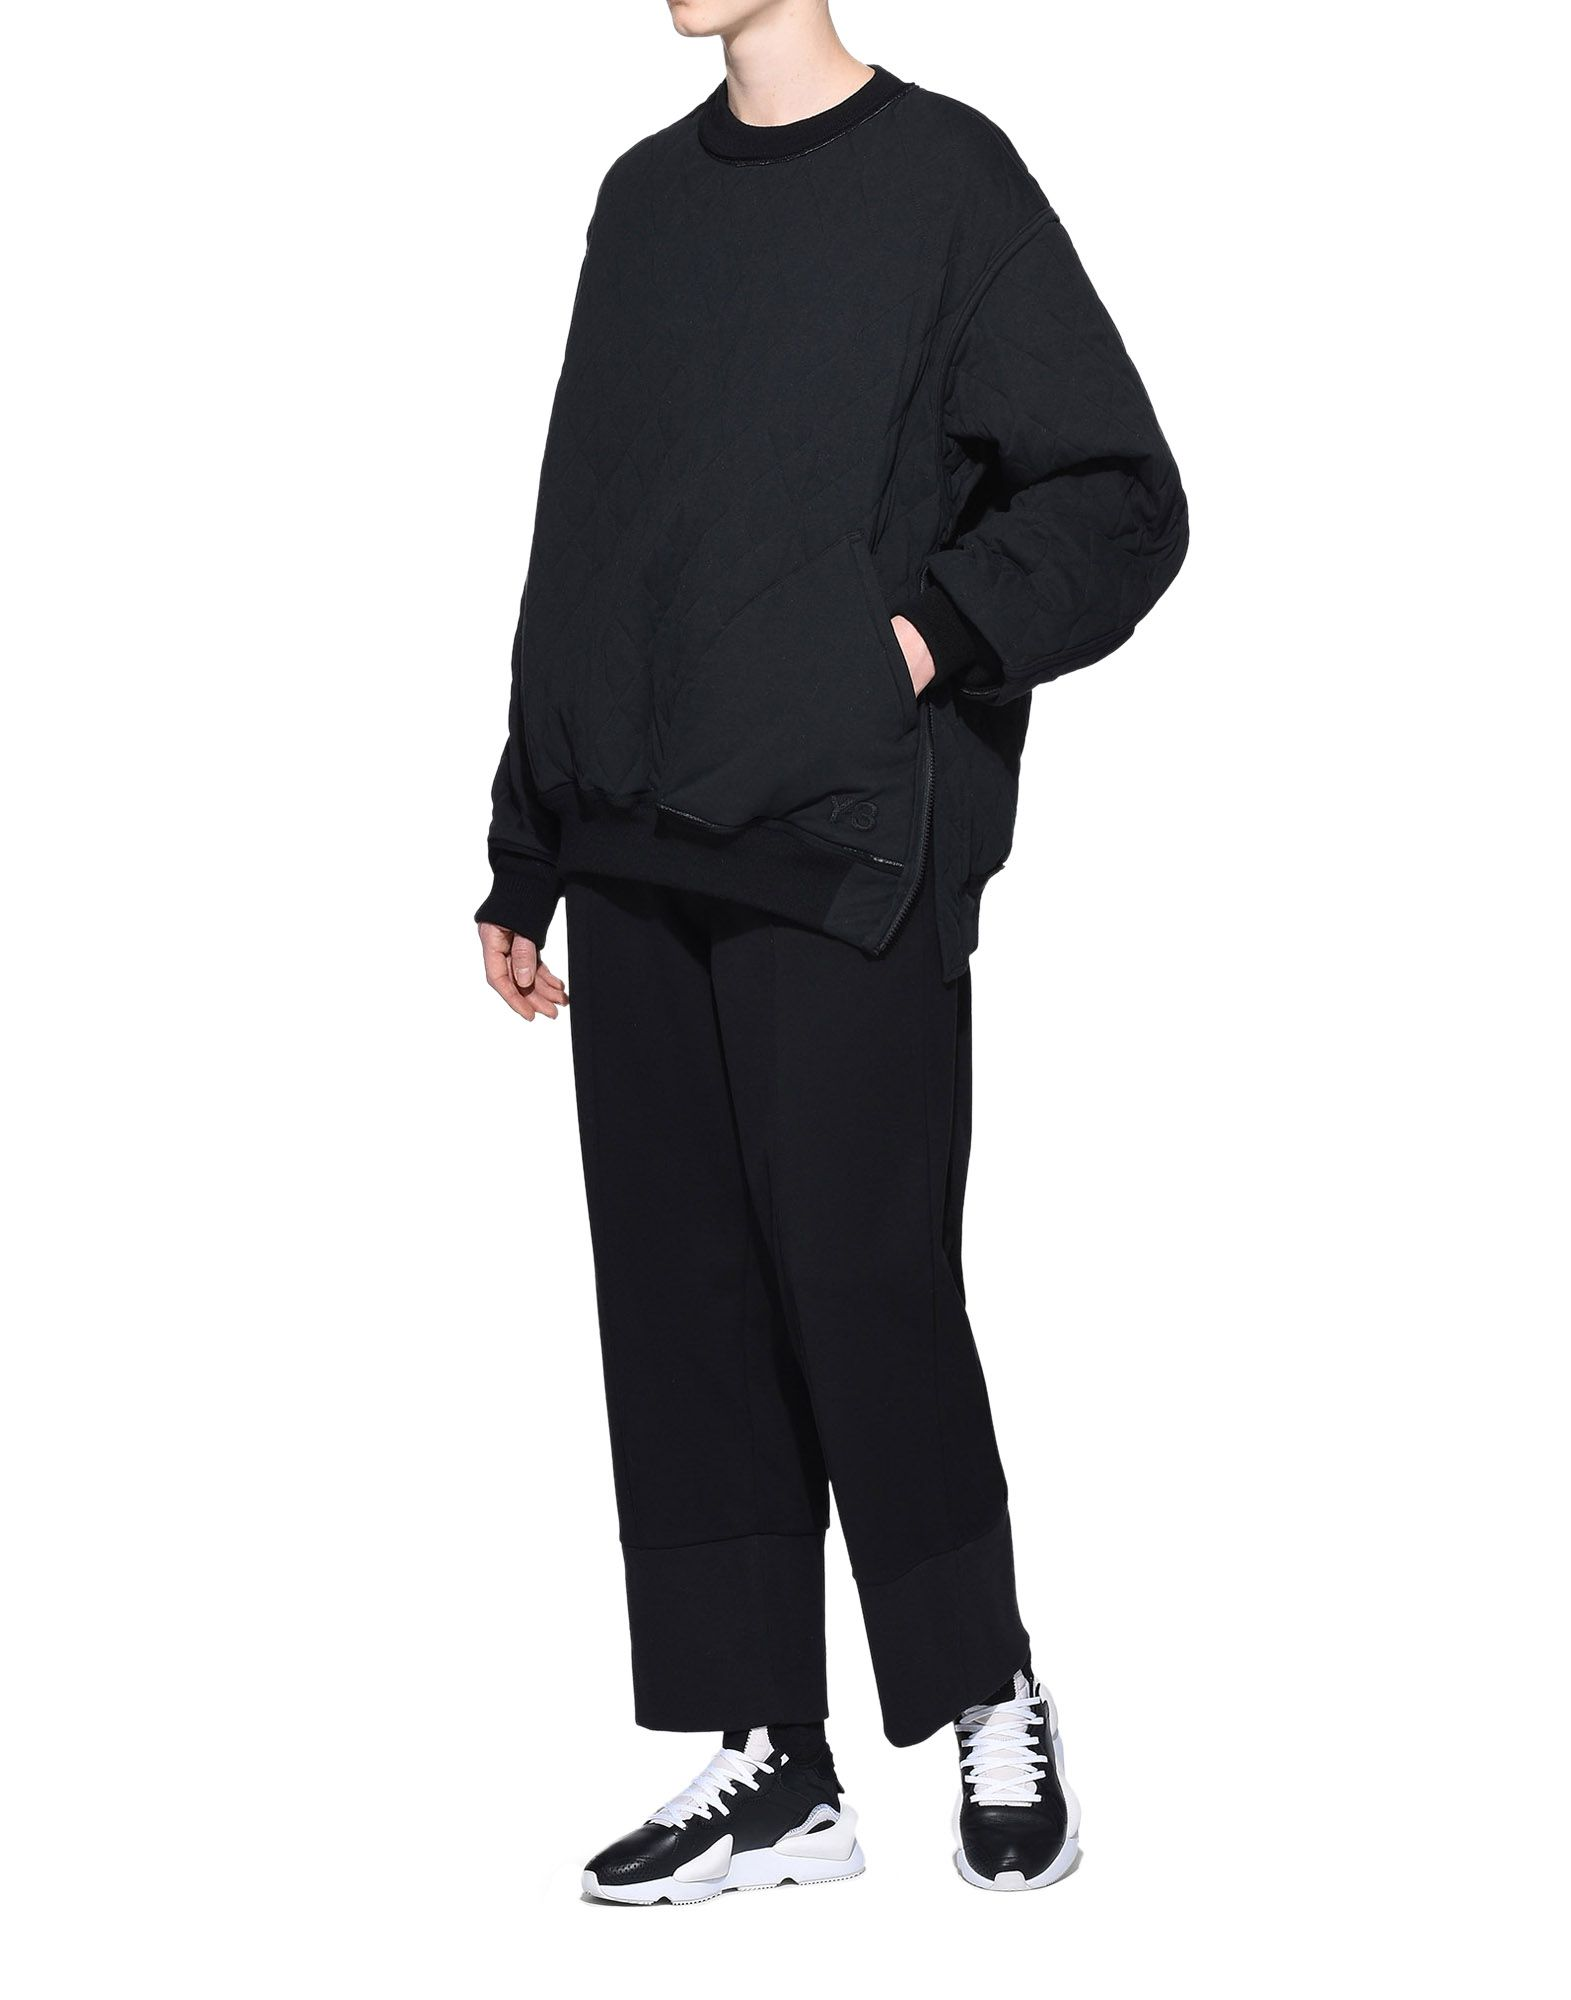 Y-3 Y-3 Quilted Sweater Sweatshirt Woman a